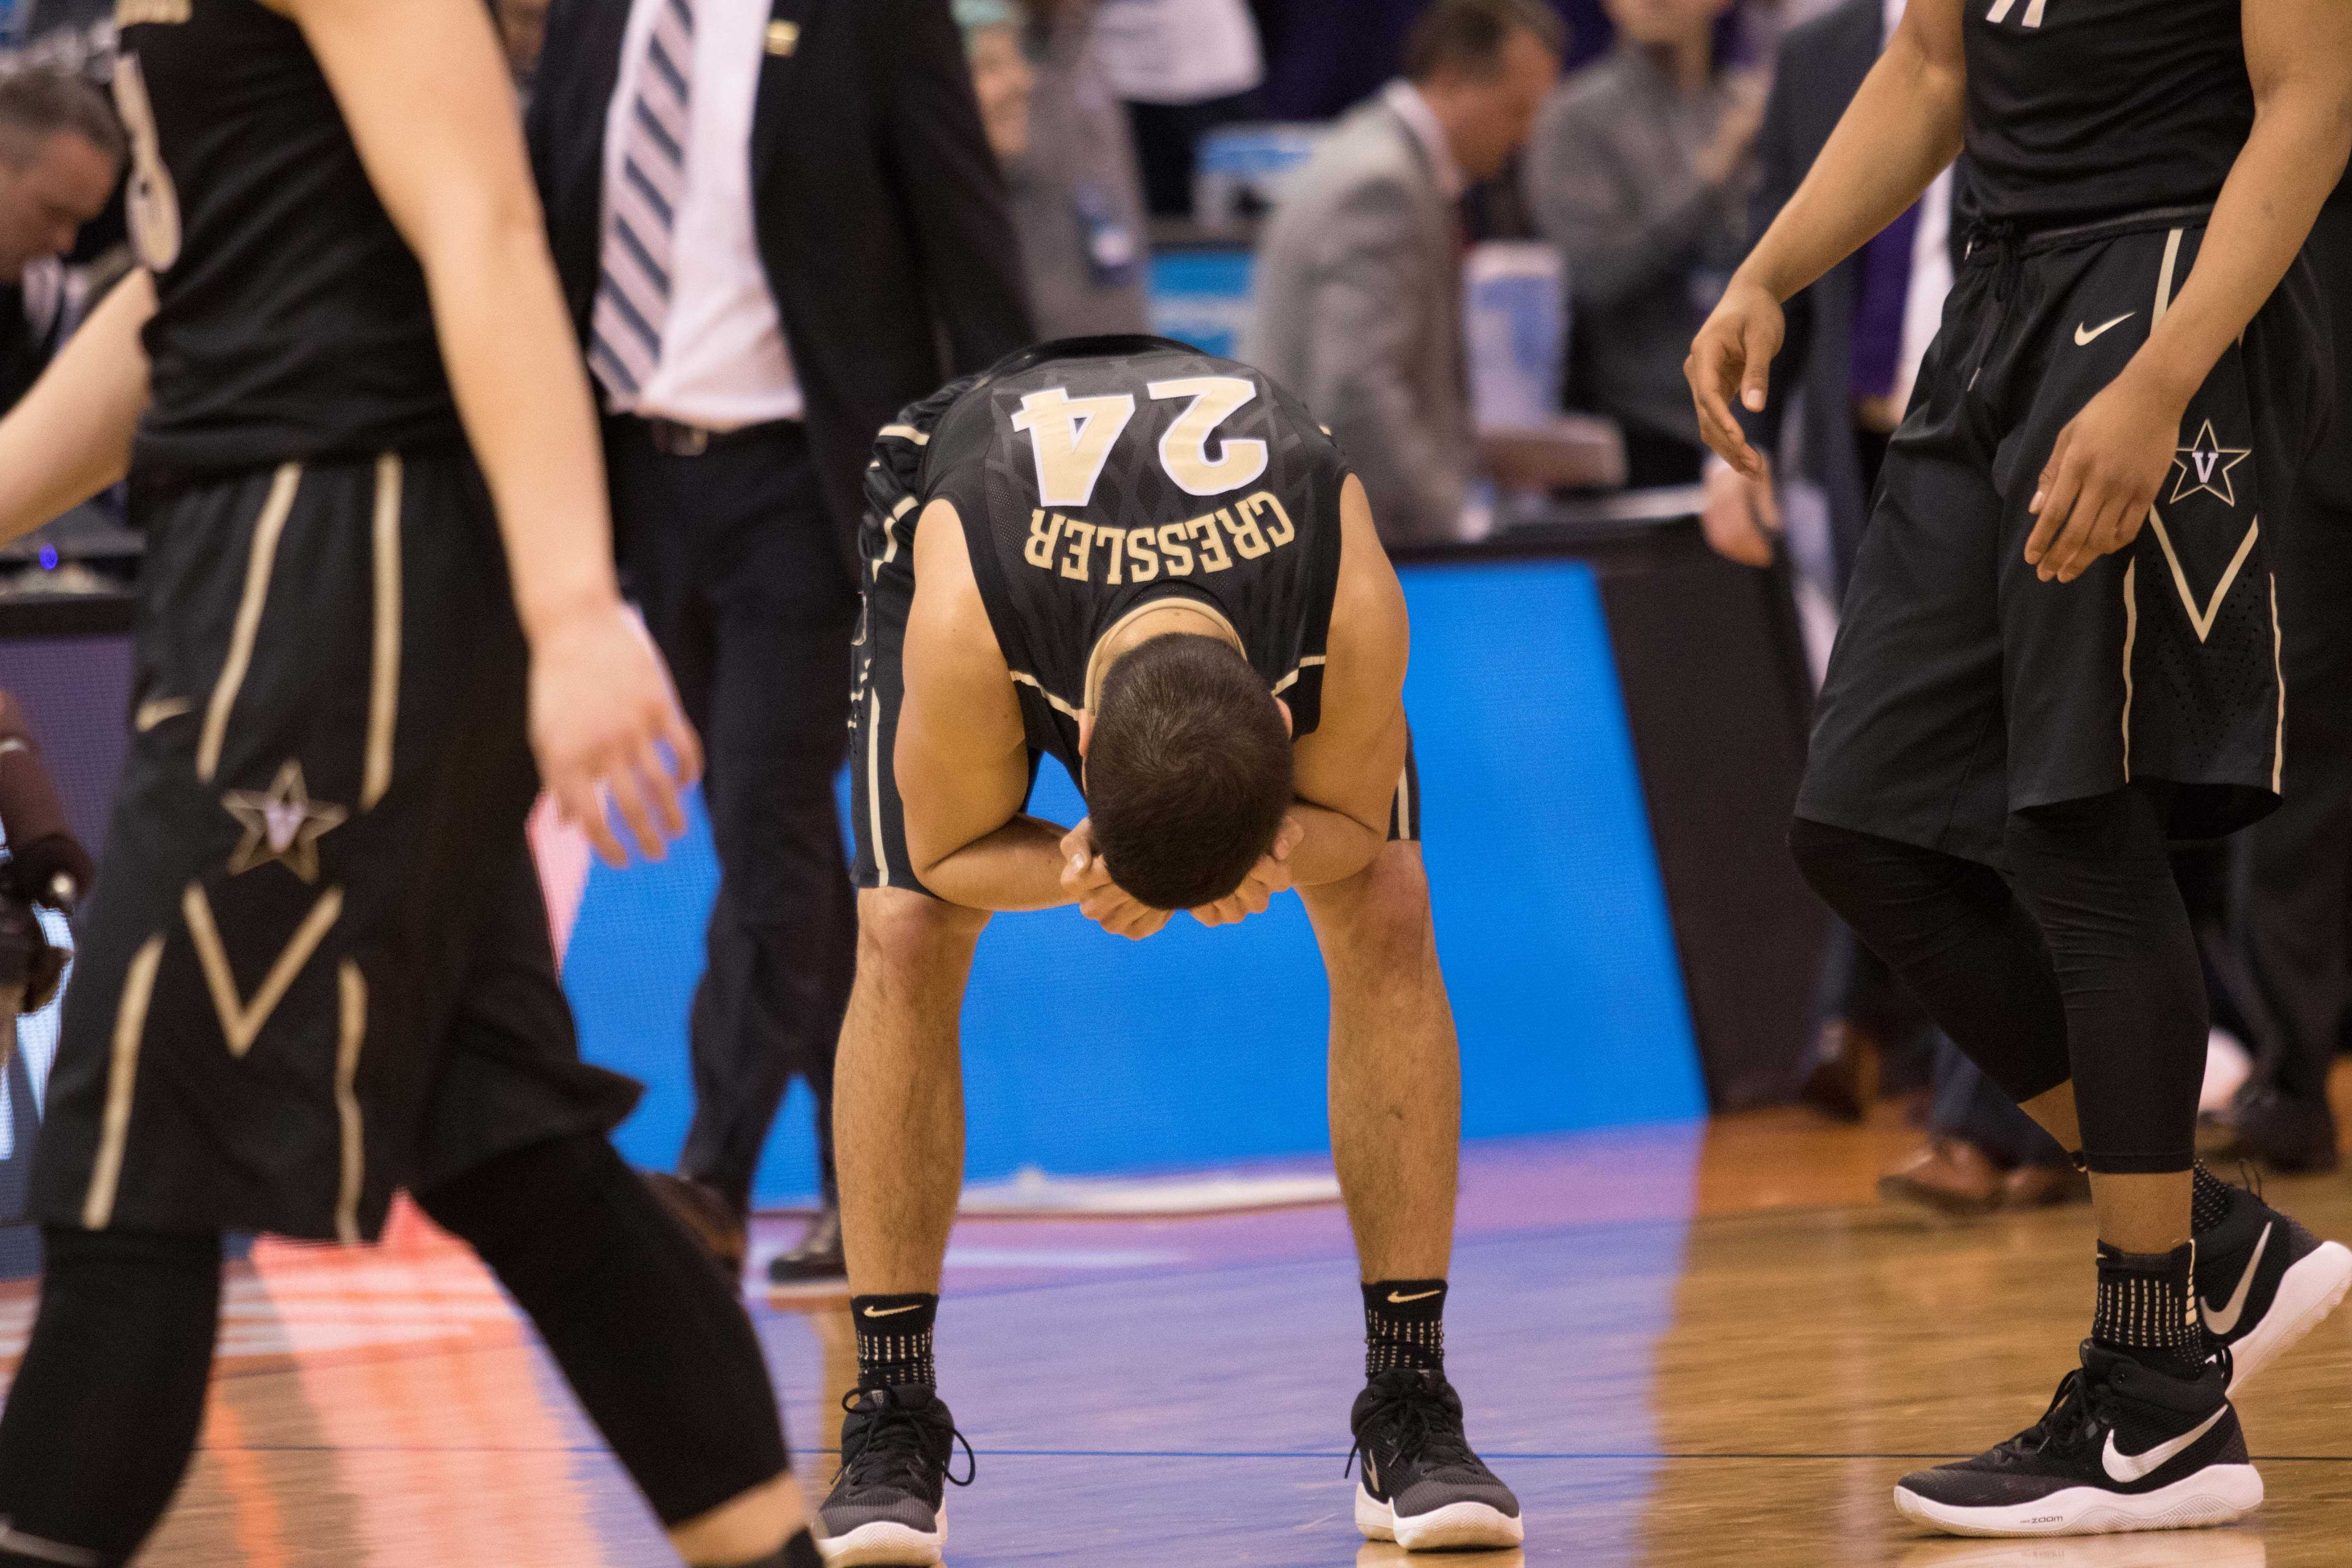 Vanderbilt's Nolan Cressler reacts after the Commodores lost to Northwestern 68-66 in the NCAA tournament first round on March 16, 2017.